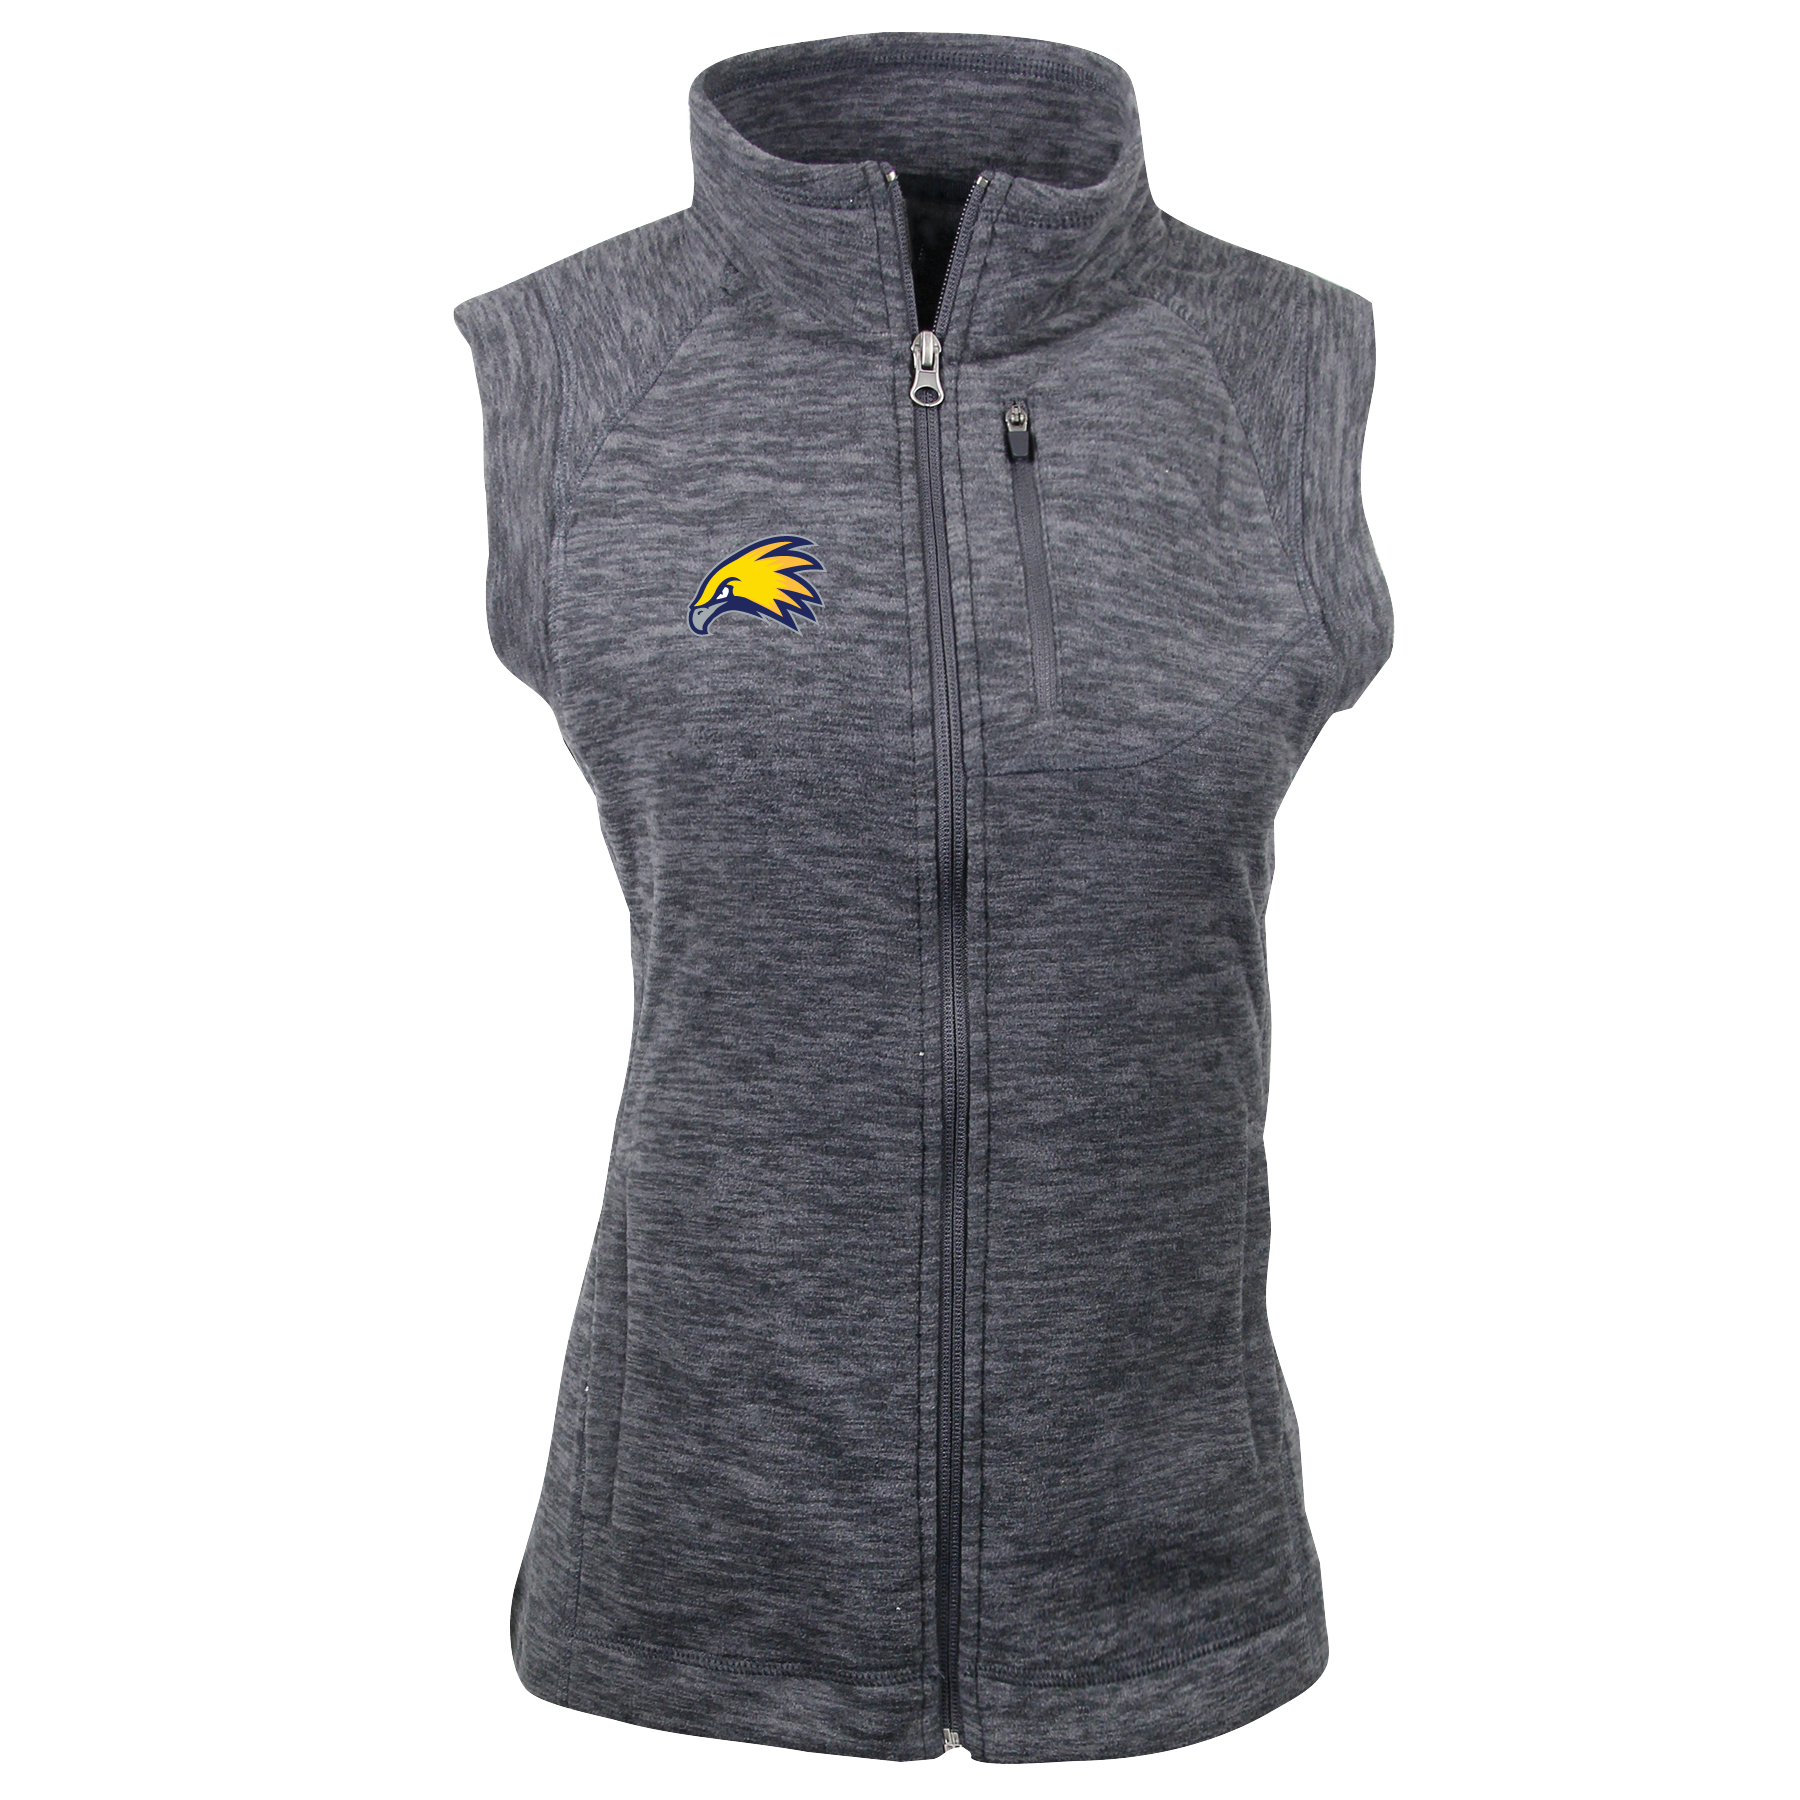 Women's Fleece Guide Vest